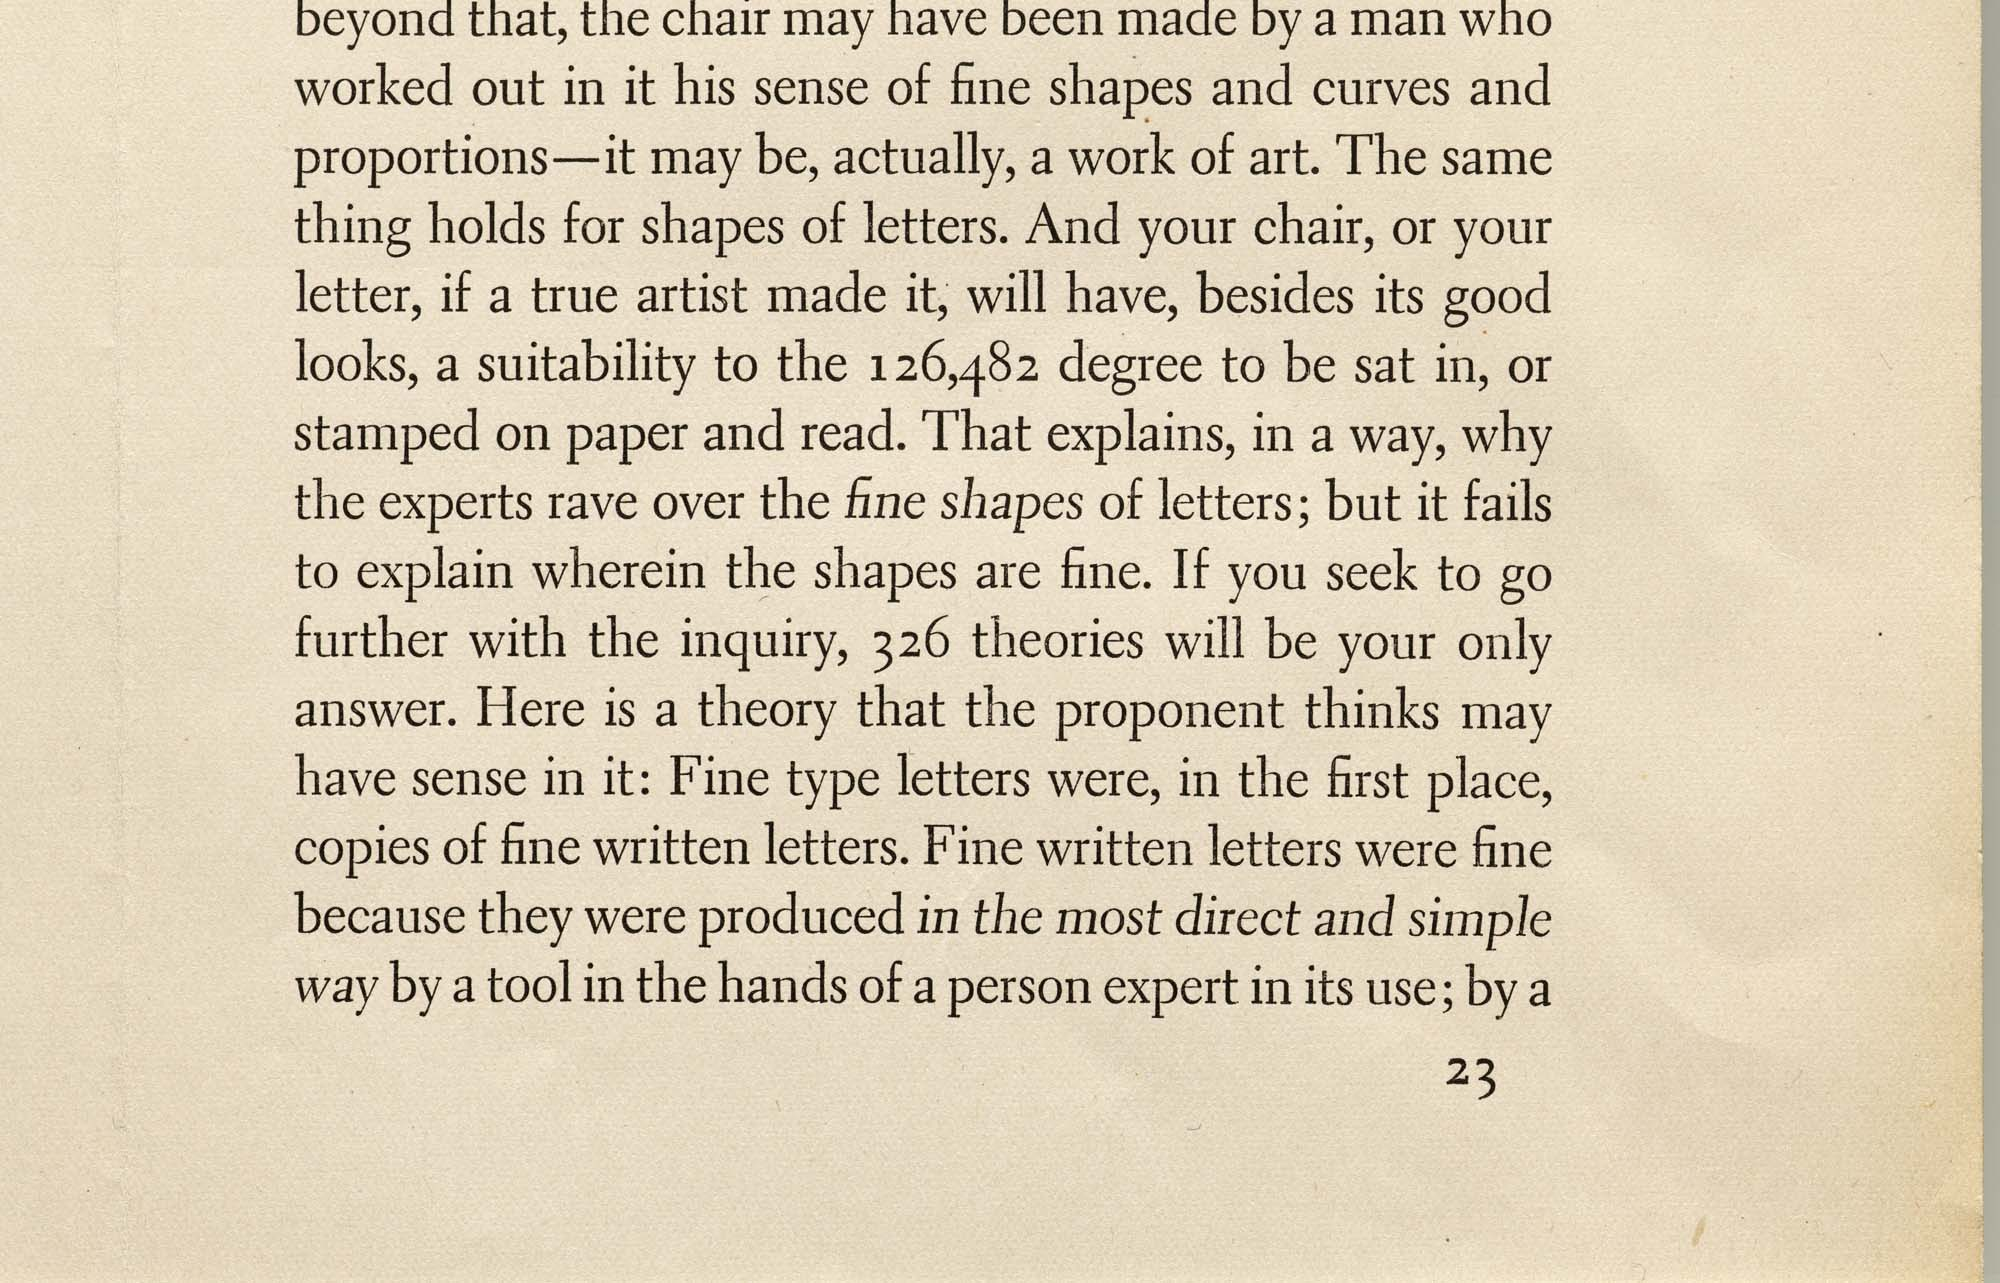 Sample of Dwiggins' Electra in its original metal form, Linotype, 1935